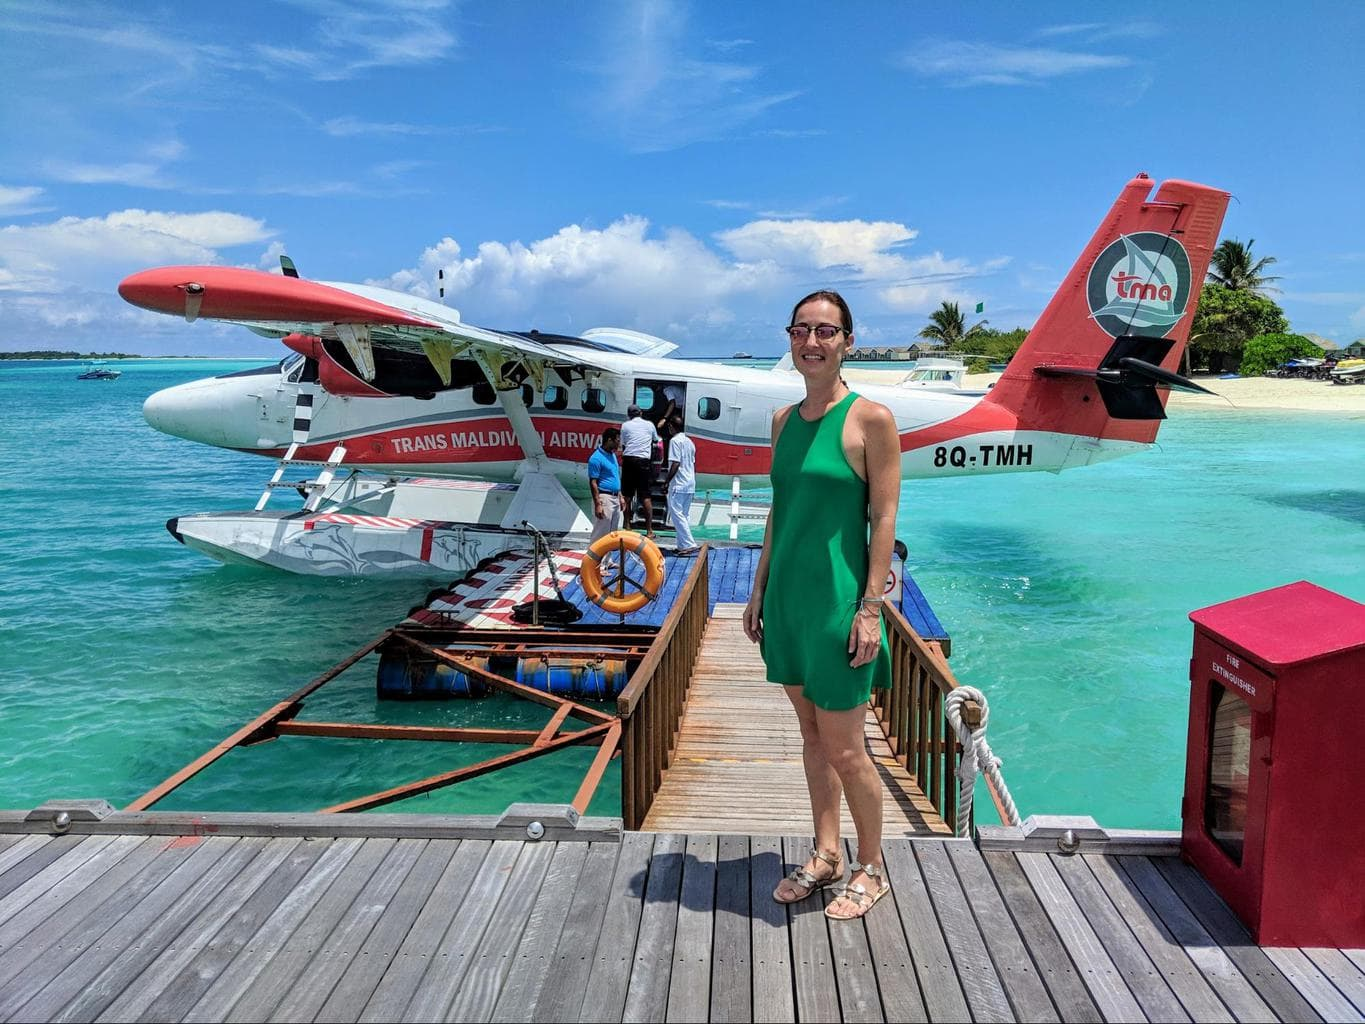 Summer dresses to board a Maldivian seaplane